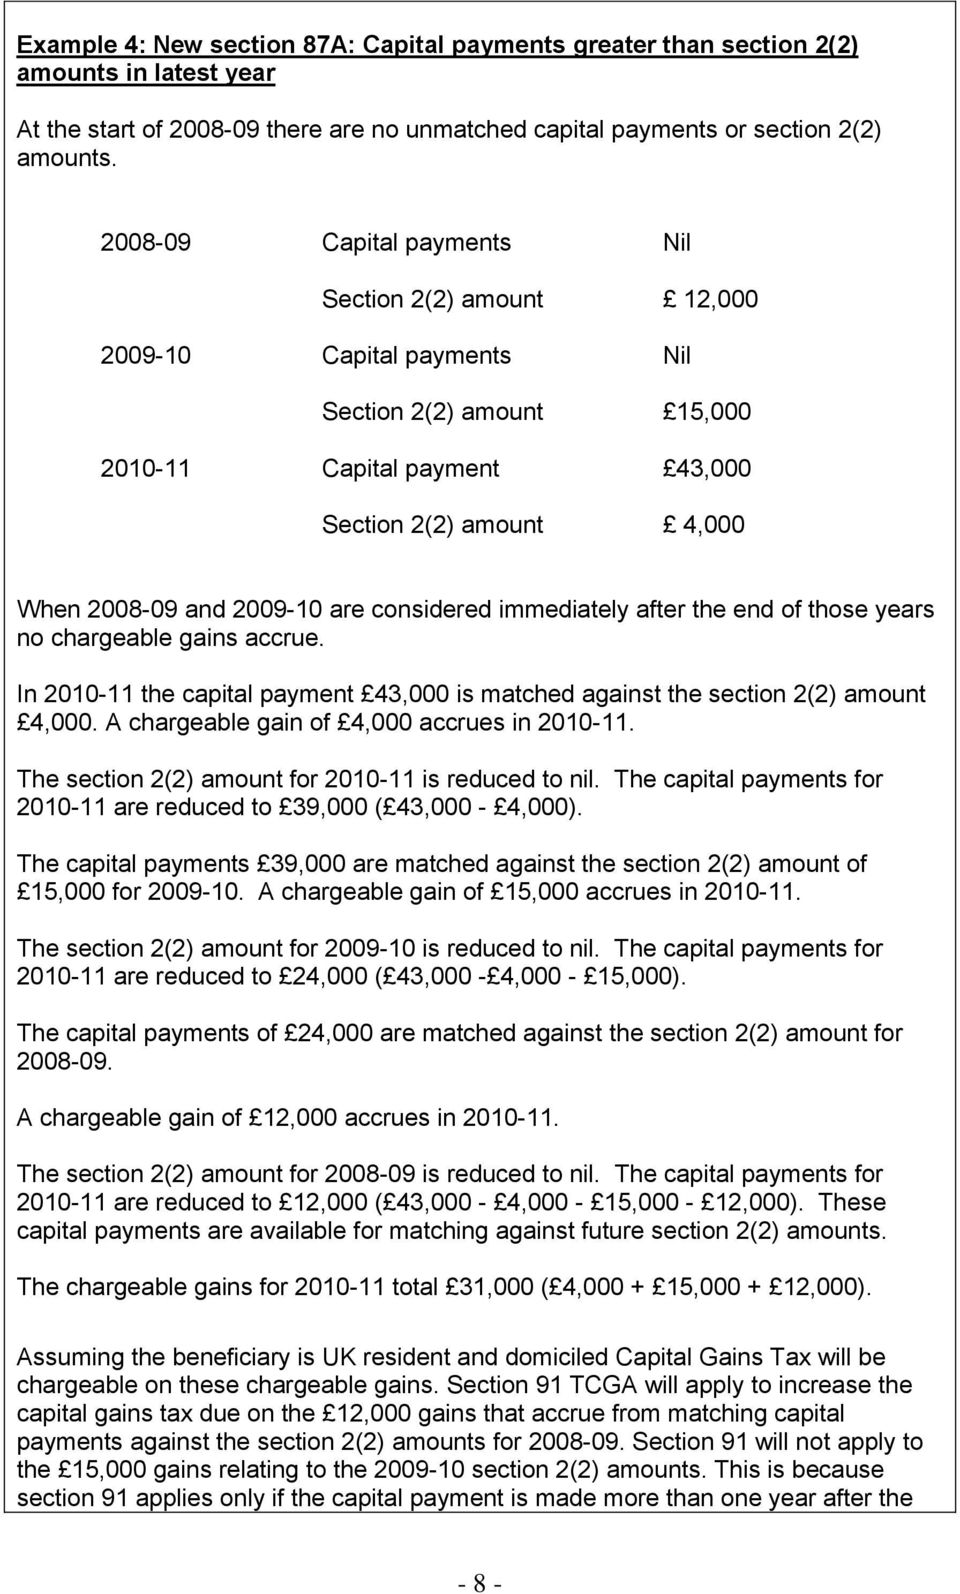 considered immediately after the end of those years no chargeable gains accrue. In 2010-11 the capital payment 43,000 is matched against the section 2(2) amount 4,000.